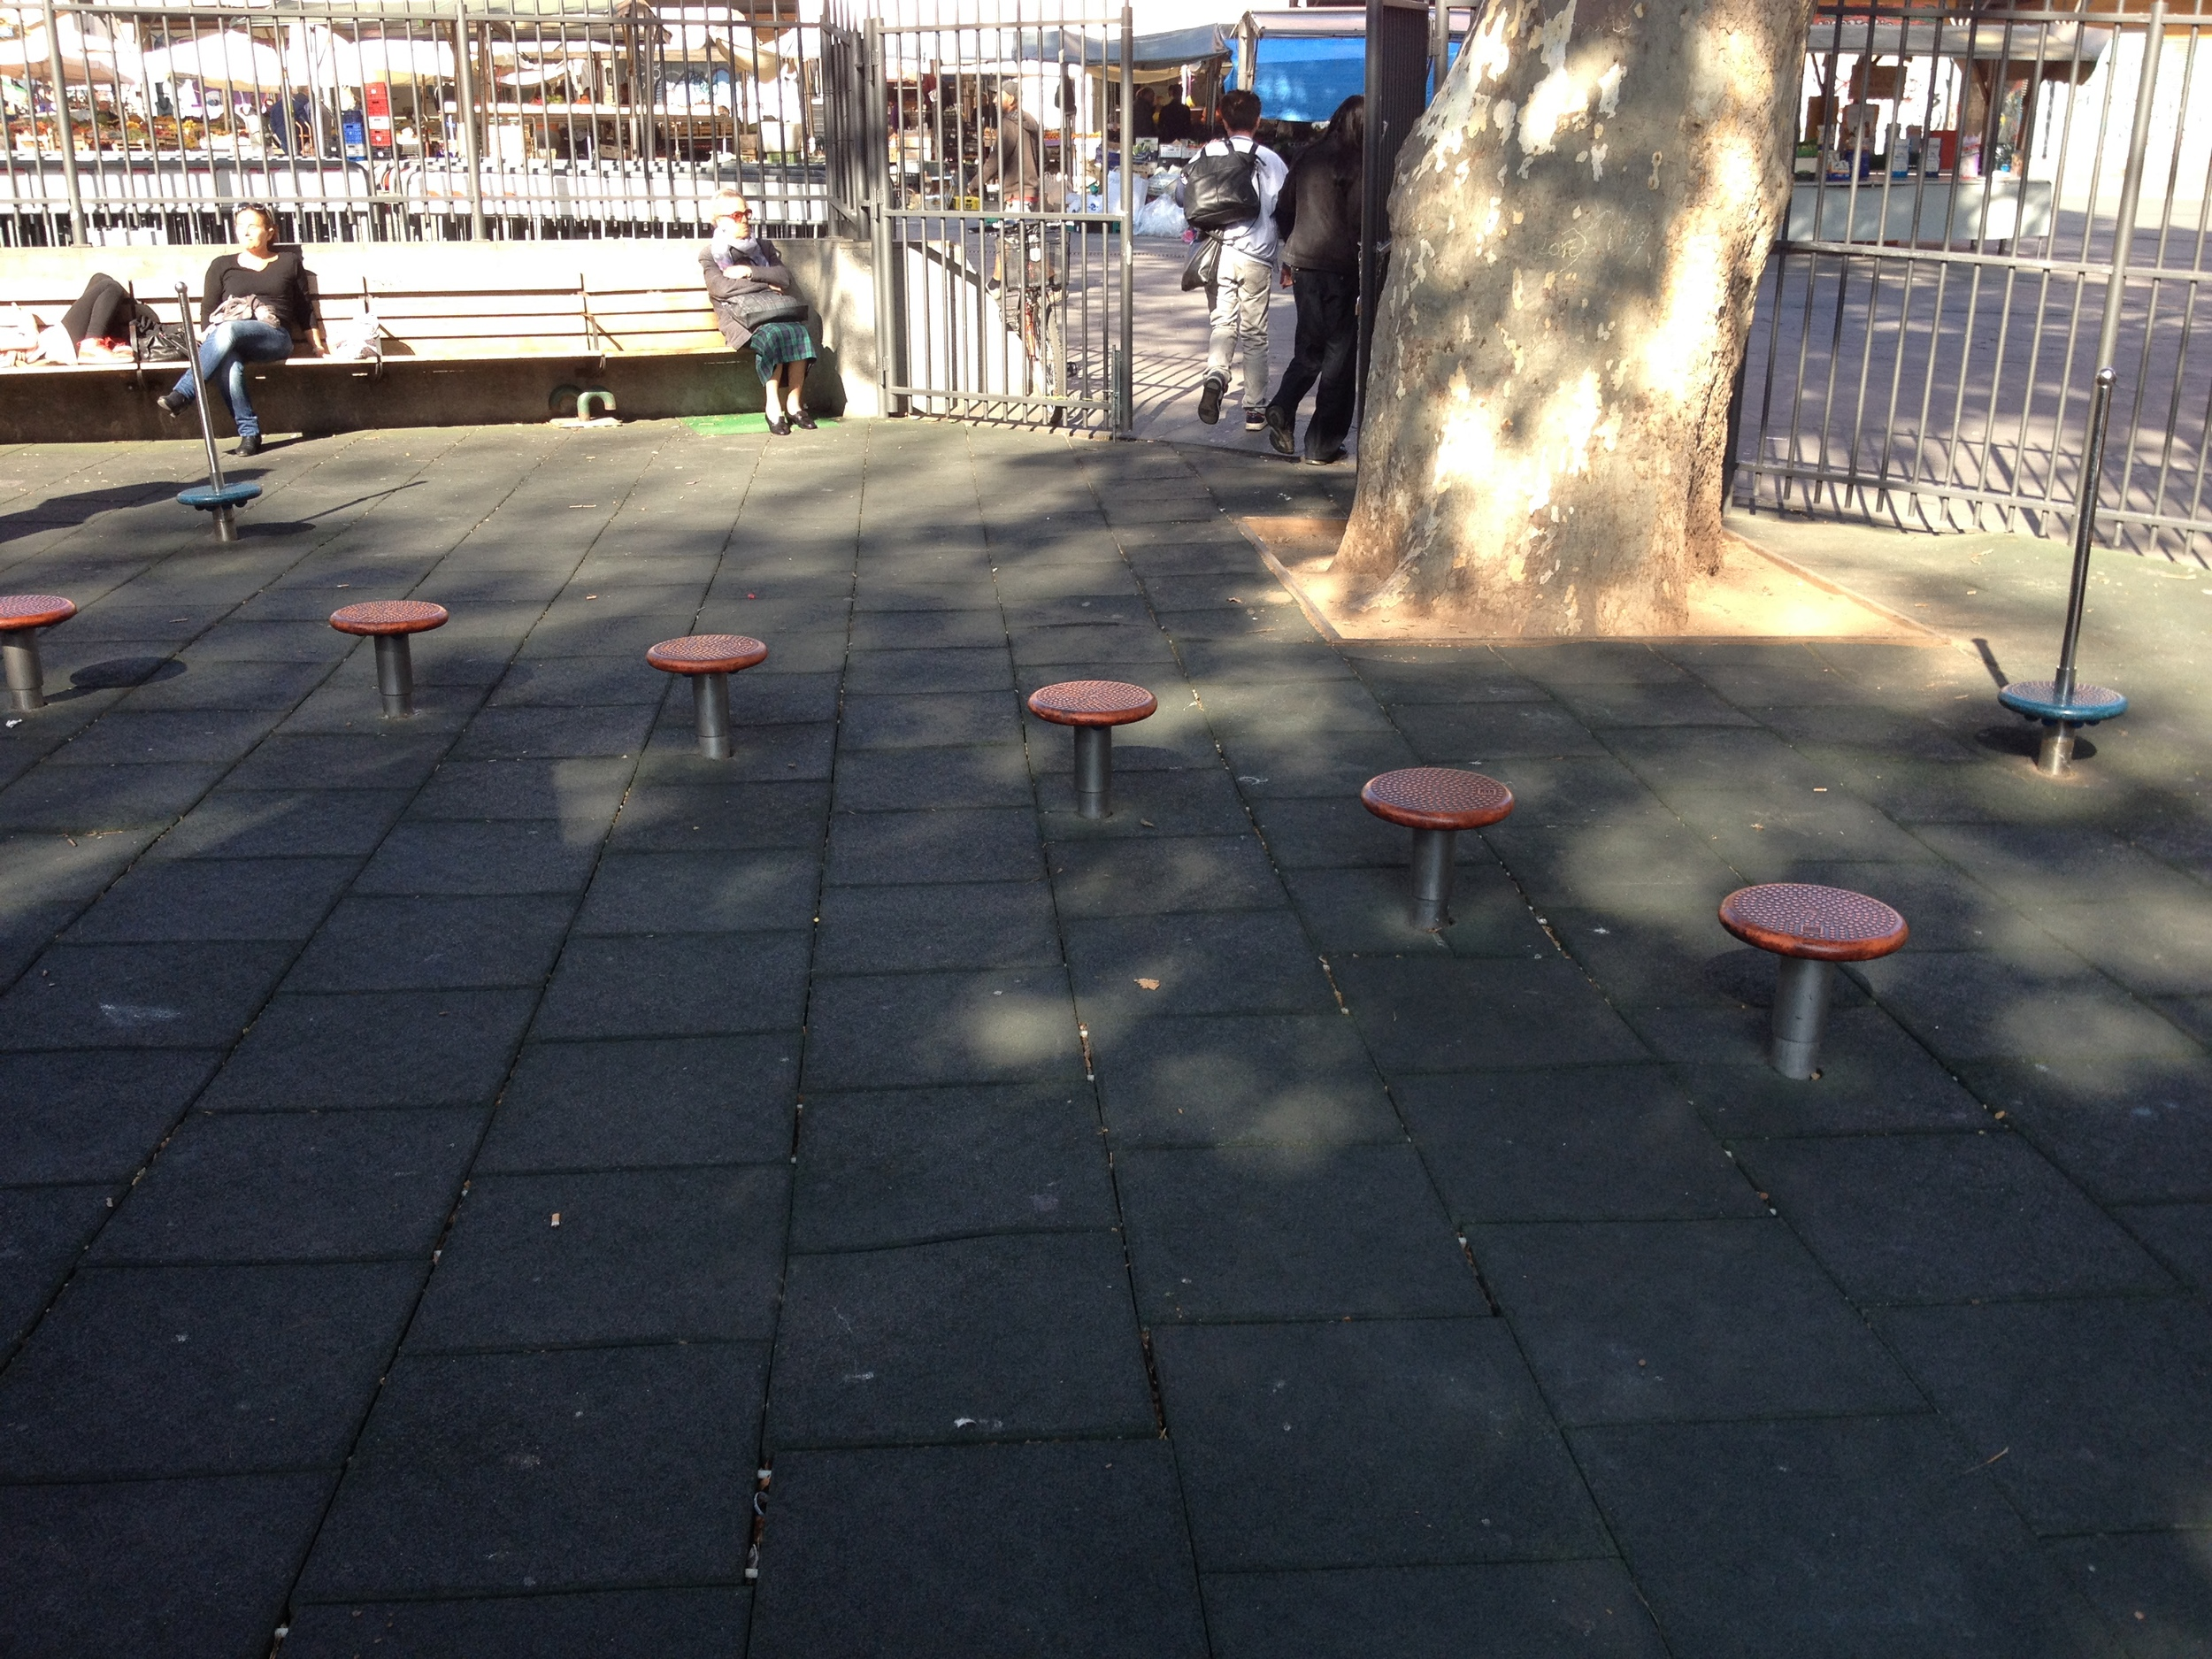 The seven stepping stools, who would think they could be so much fun.